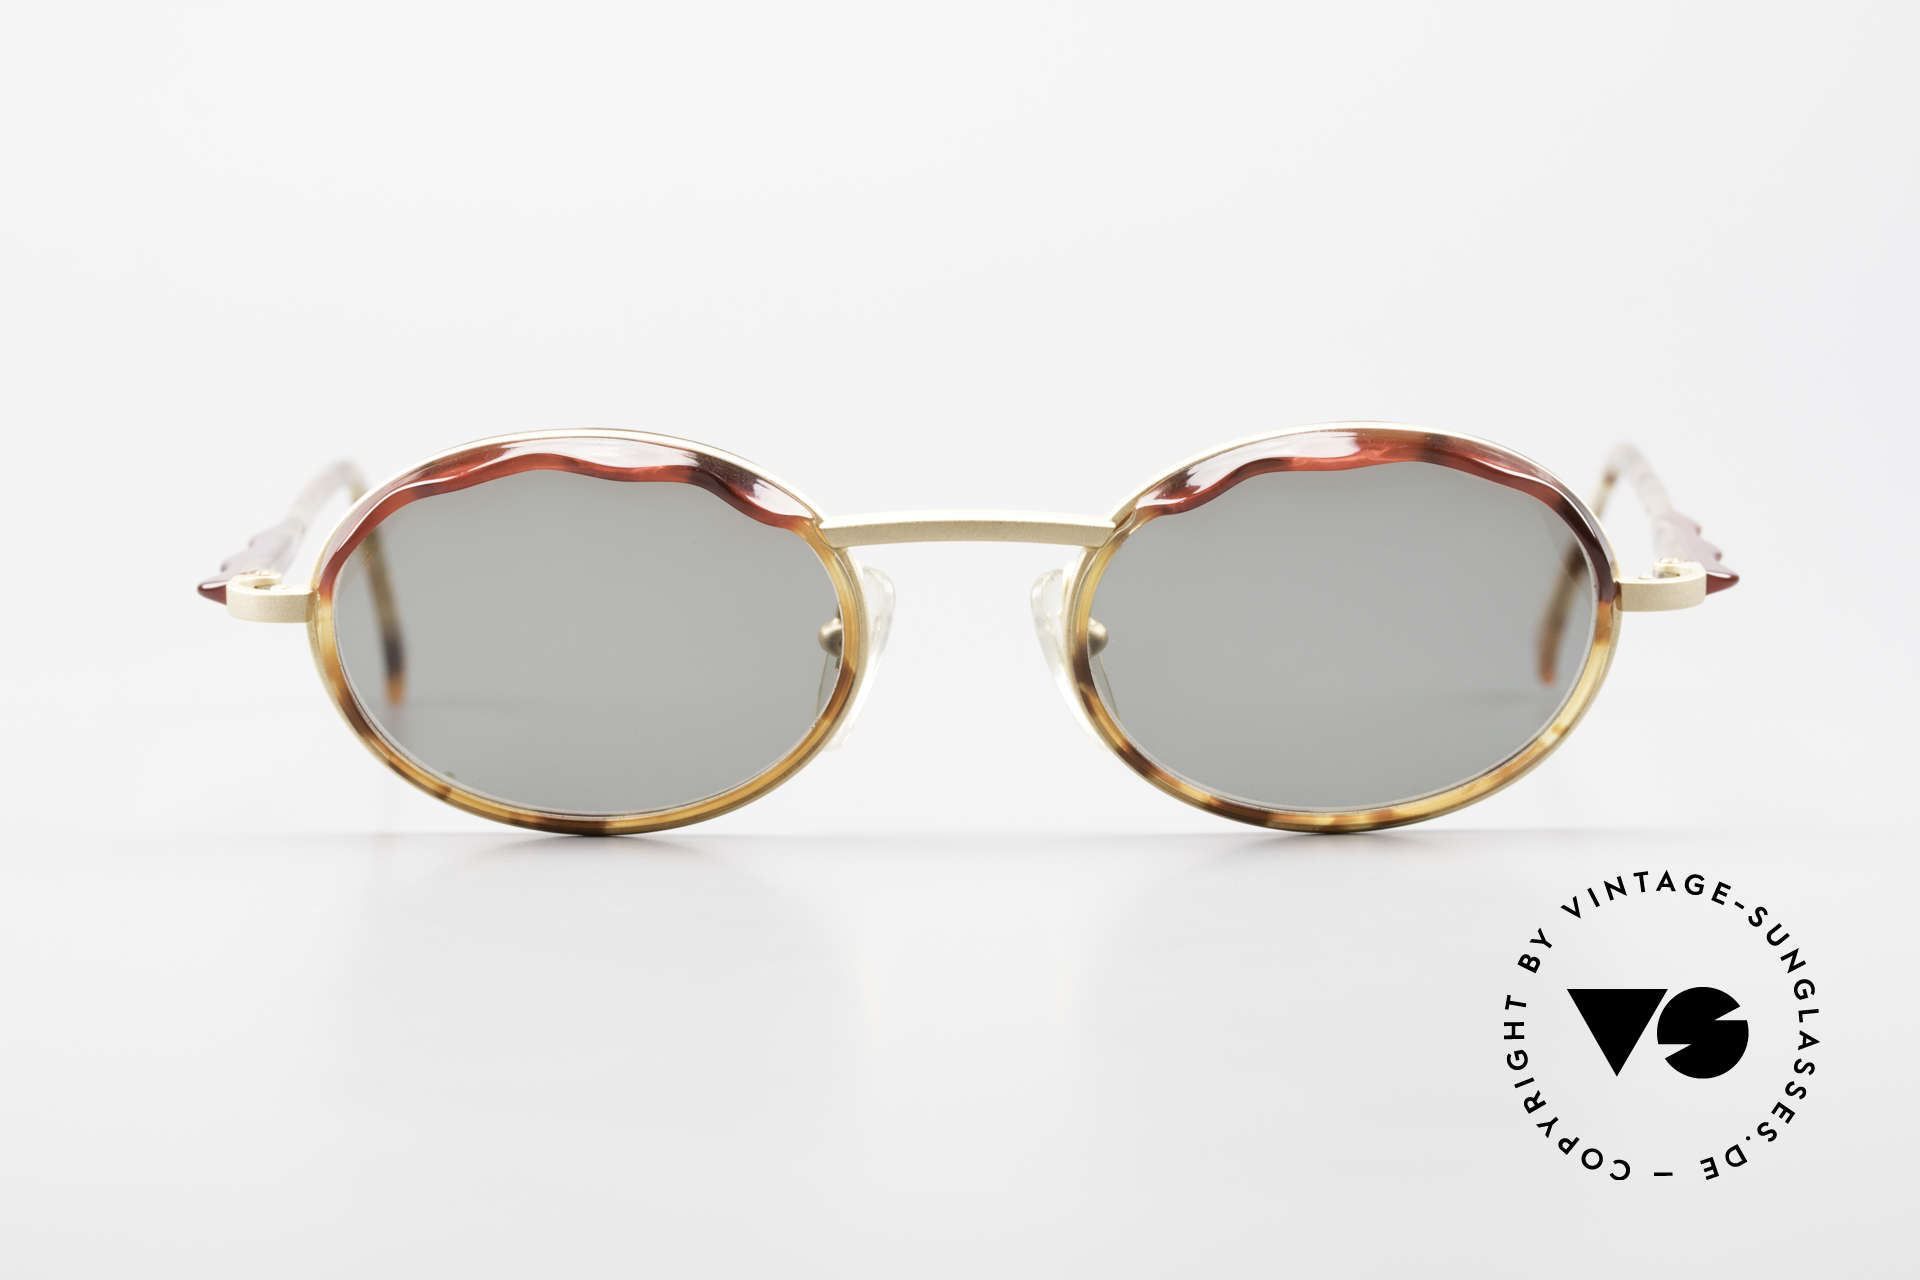 Alain Mikli 2149 / 04001 Oval Vintage Ladies Shades, costly combination of materials & complex coloration, Made for Women